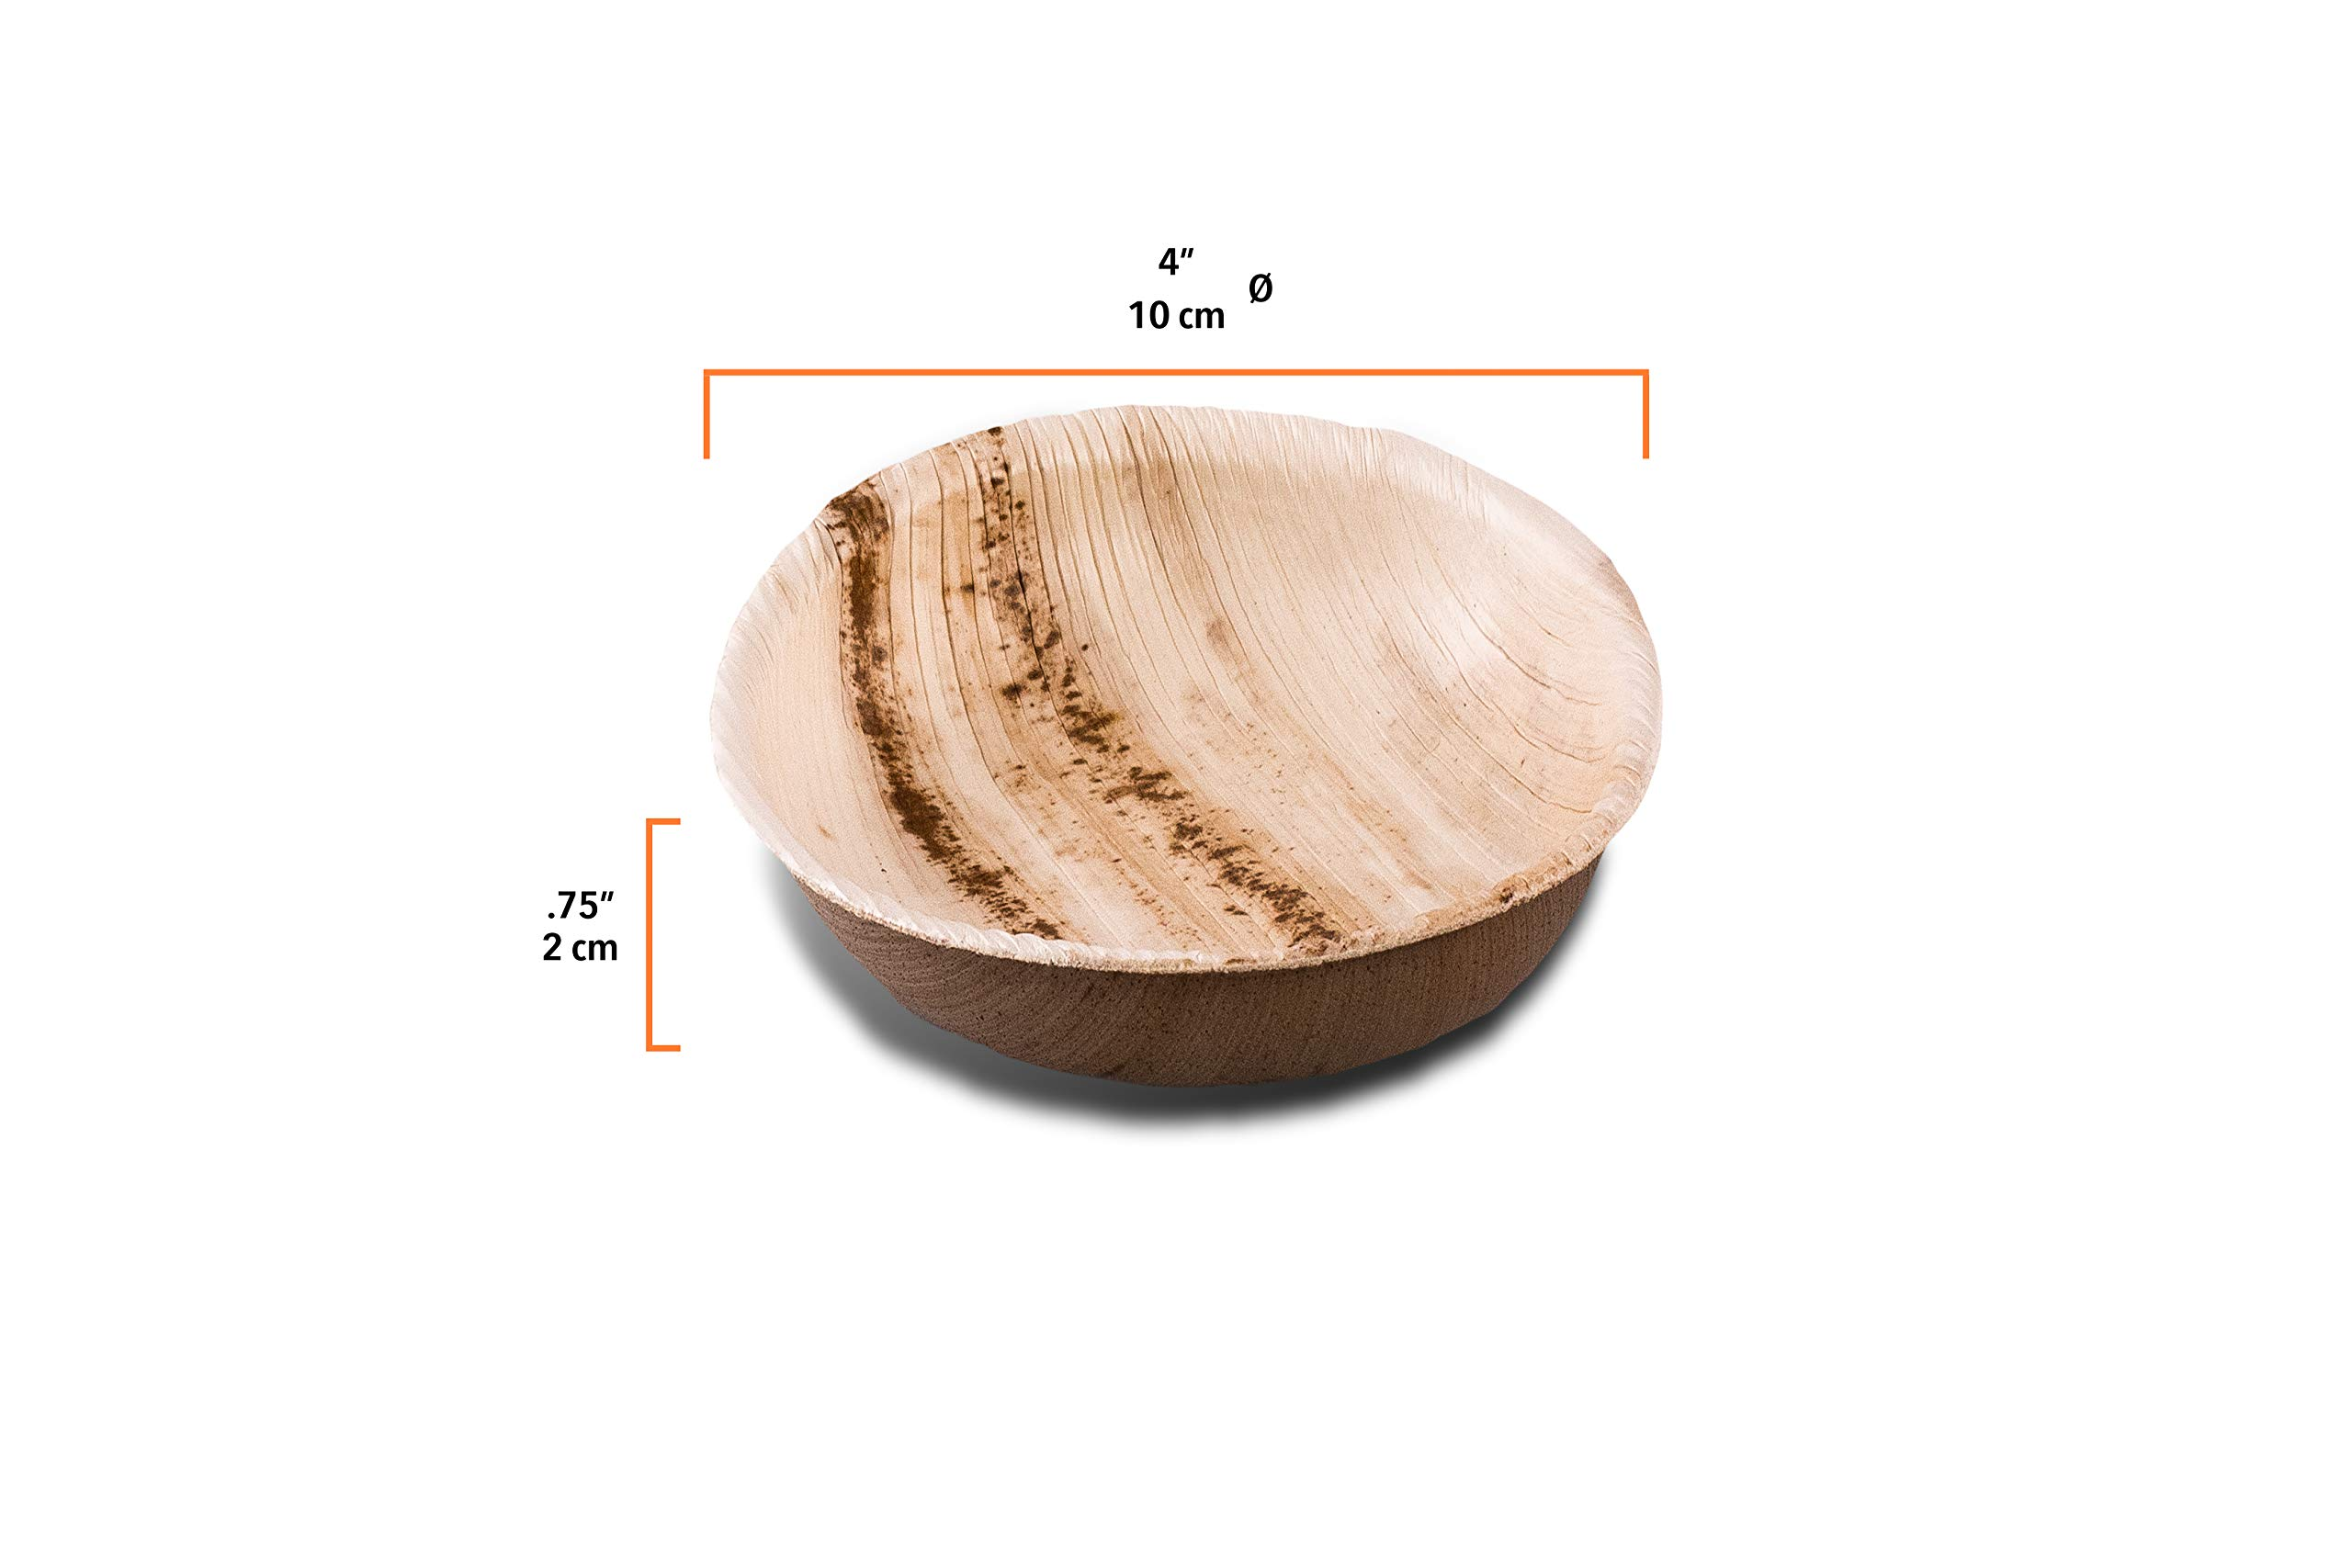 """Naturally Chic 4"""" Round Shallow Mini Disposable Palm Leaf Dish - 25 Pack - Tiny Snack and Dip Bowl - Eco-Friendly, Biodegradable & Compostable - Ideal for Weddings, Parties, Home Use"""